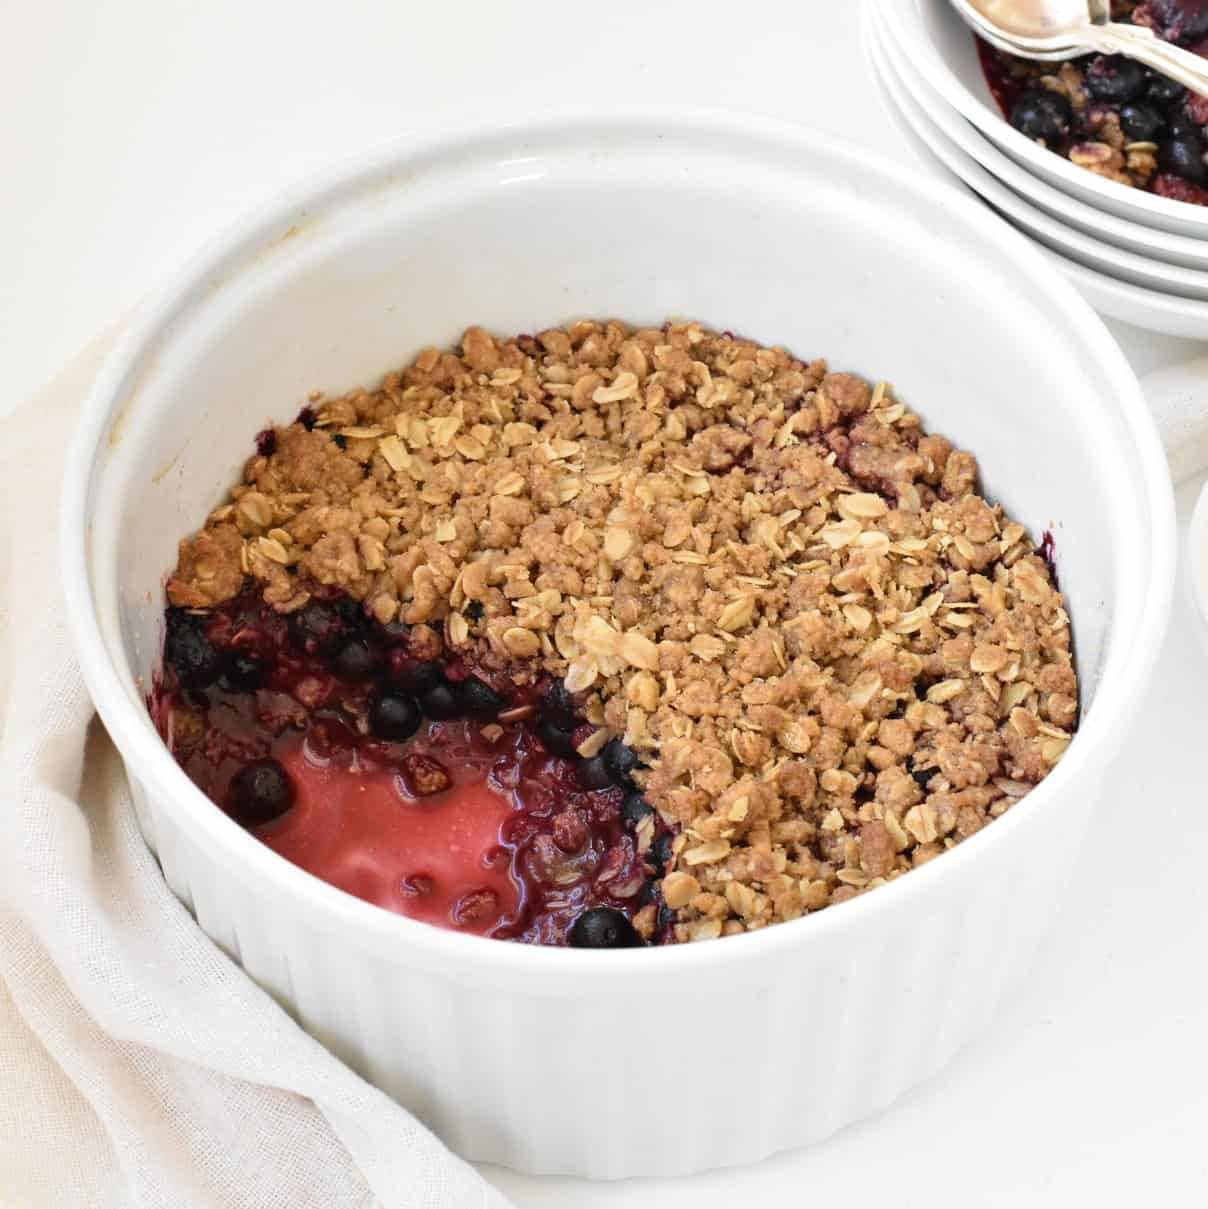 Berry Crumble being served.